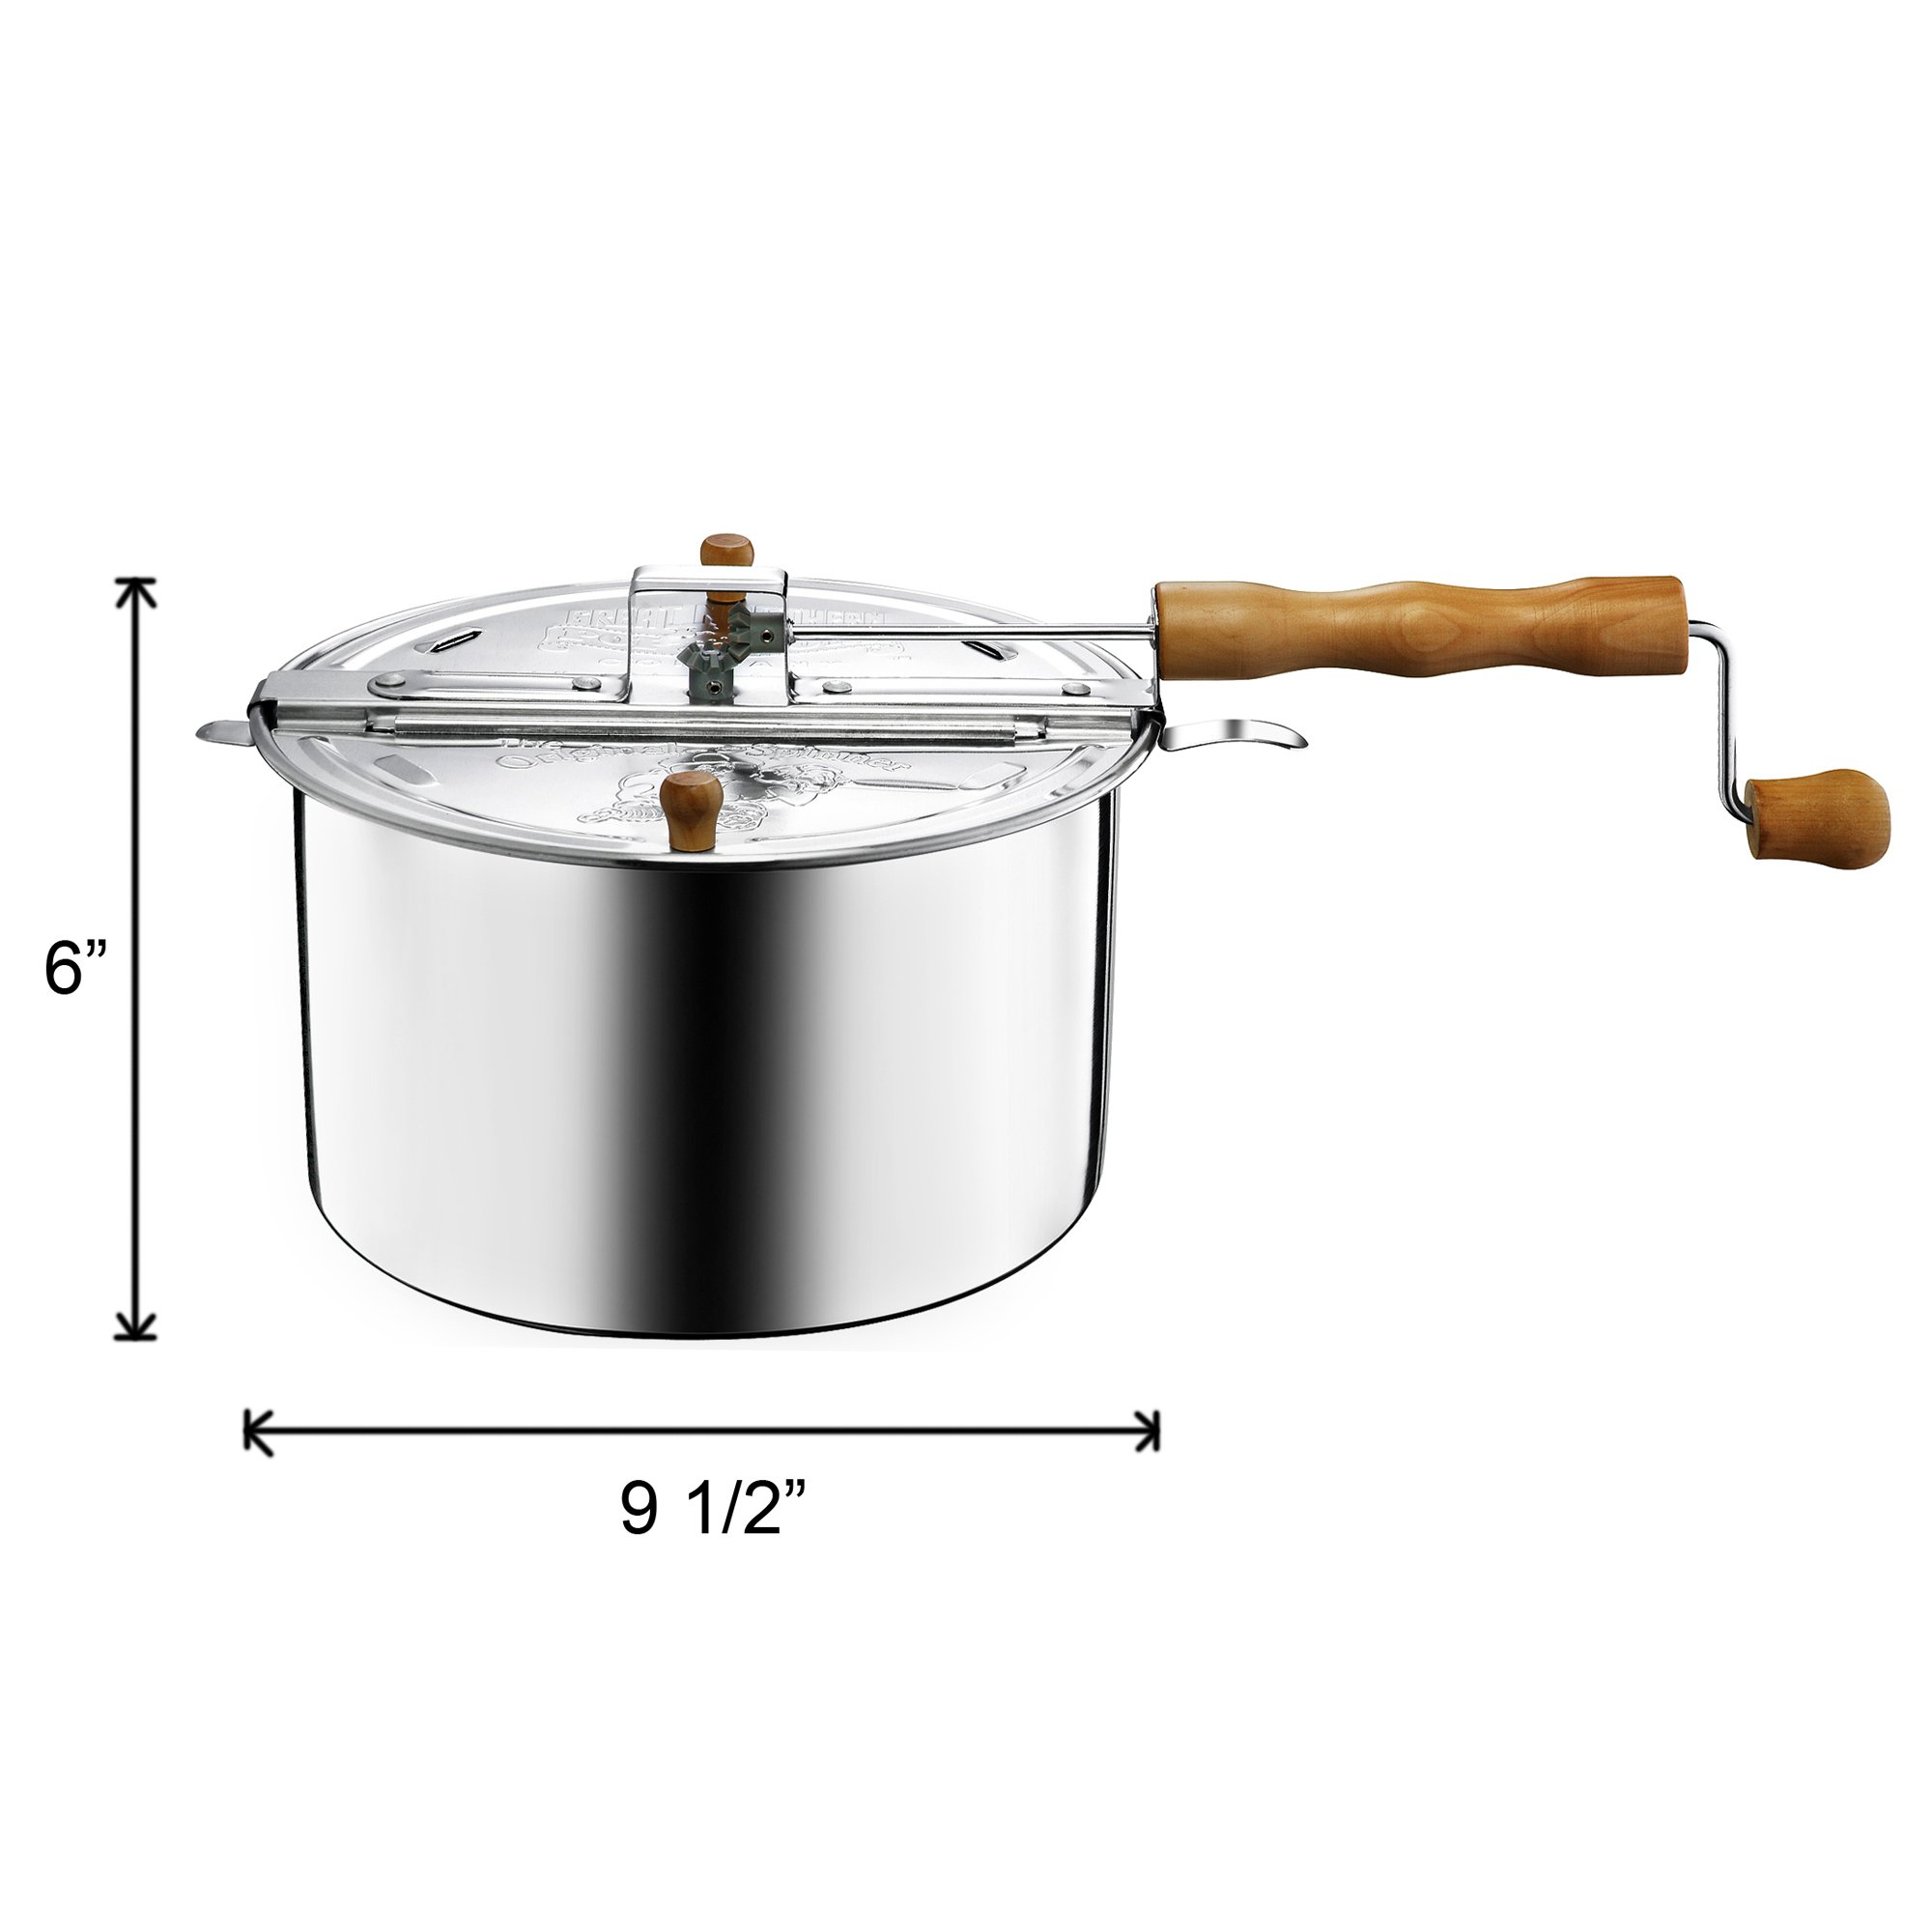 Great Northern Popcorn Original Spinner Stovetop 6-1/2-Quart Popcorn Popper by Great Northern Popcorn Company (Image #7)